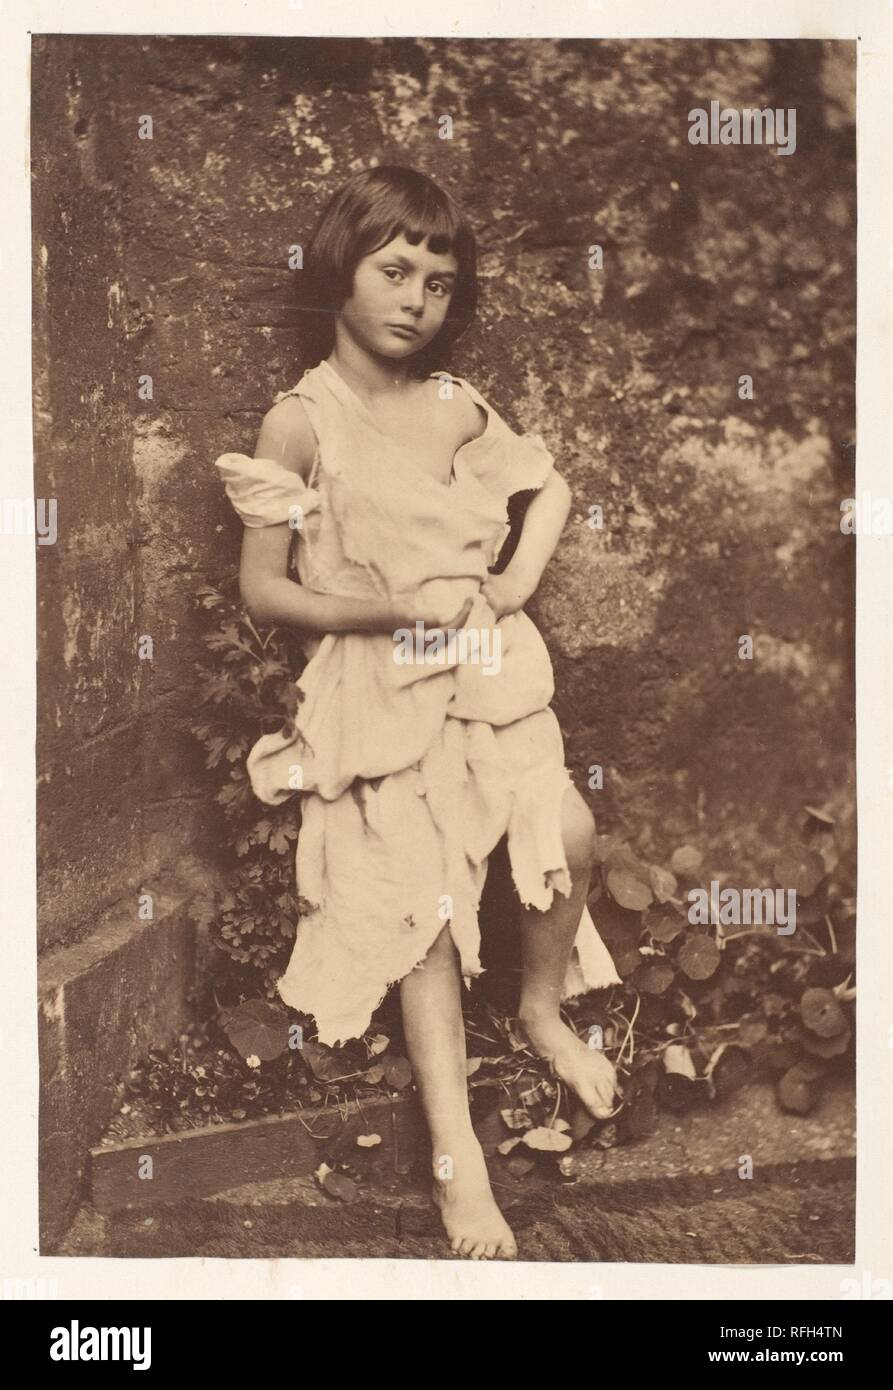 Alice Liddell as 'The Beggar Maid'. Artist: Lewis Carroll (British, Daresbury, Cheshire 1832-1898 Guildford). Dimensions: Image: 16.3 x 10.9cm (6 7/16 x 4 5/16in.)  Mount: 14 1/8 in. × 10 7/8 in. (35.8 × 27.6 cm). Subject: Alice Pleasance Liddell (British, 1852-1934). Date: 1858.  Known primarily as the author of children's books, Lewis Carroll was also a lecturer in mathematics at Oxford University and an ordained deacon. He took his first photograph in 1856 and pursued photography obsessively for the next twenty-five years, exhibiting and selling his prints. He stopped taking pictures abrupt - Stock Image